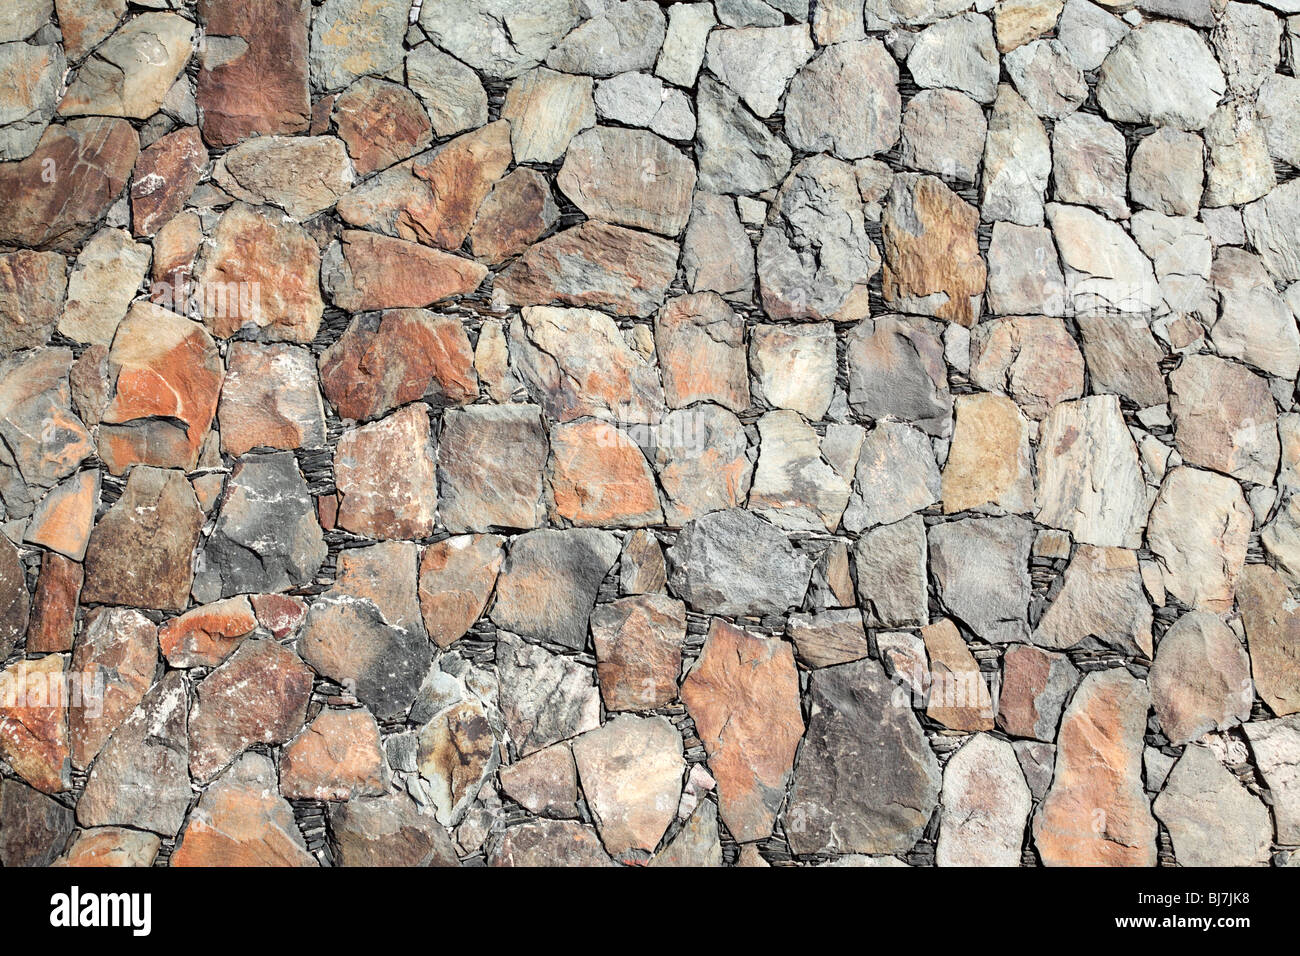 rock wall detail as a background - Stock Image